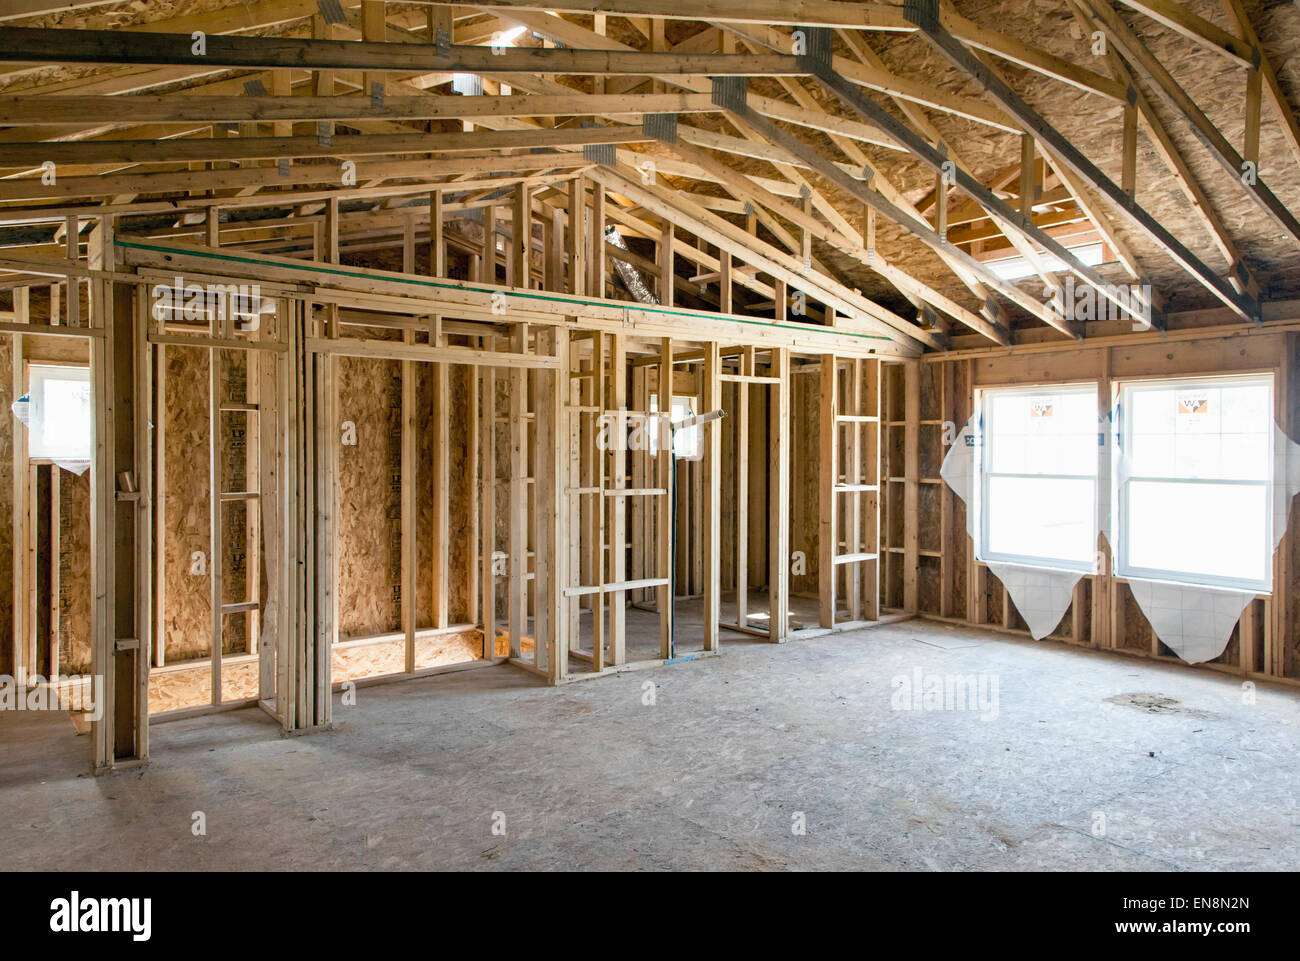 interior wall framing construction of a craftsman style residential